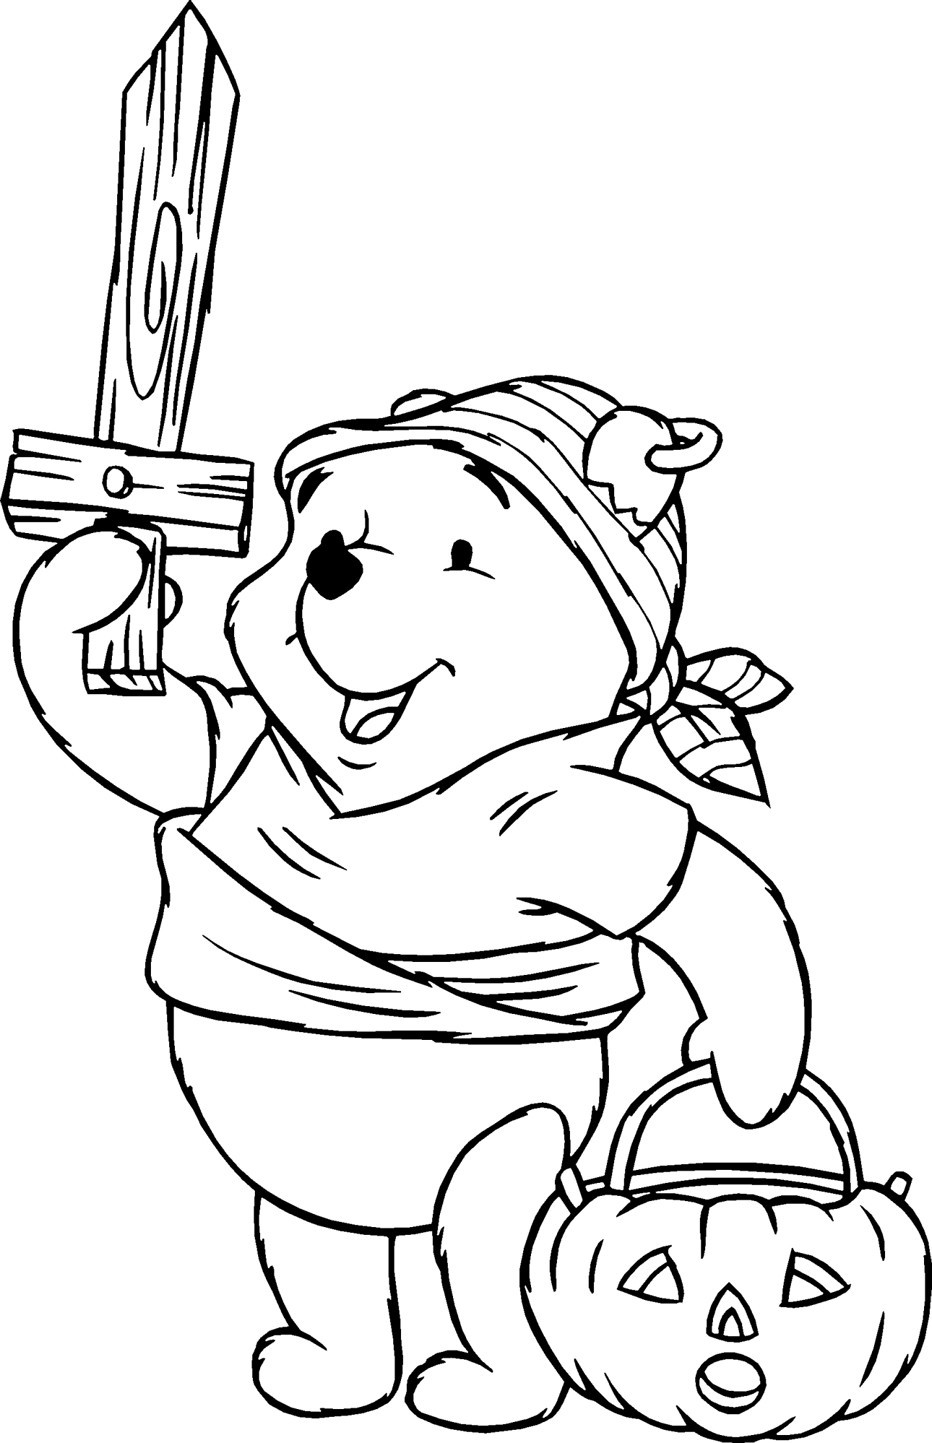 Printable Coloring Pages Kids  24 Free Printable Halloween Coloring Pages for Kids